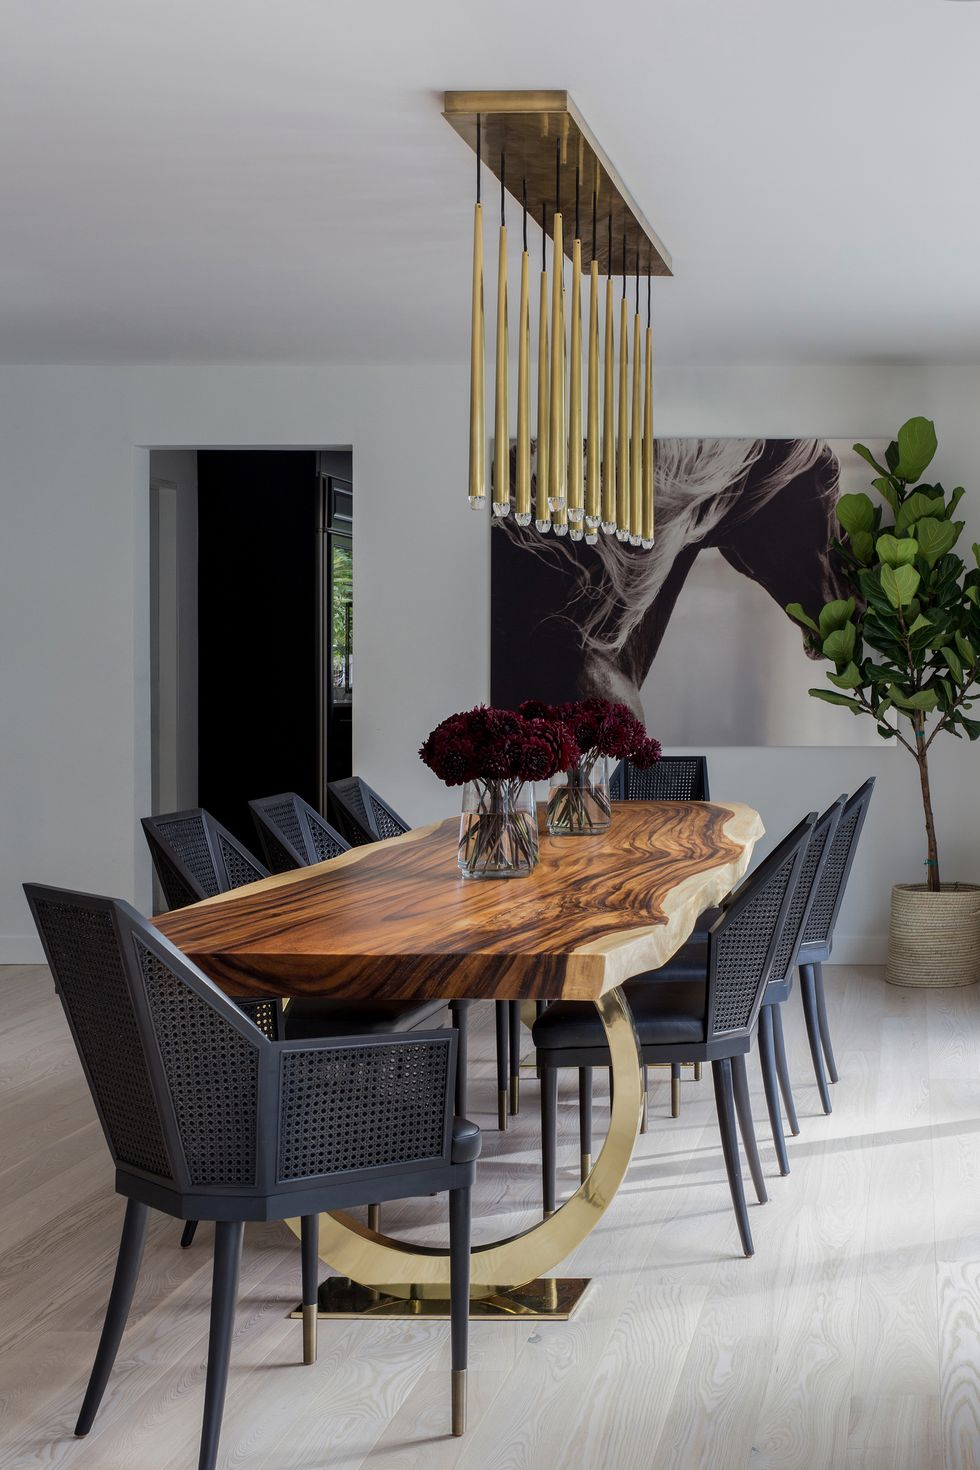 Here's How to Craft a One-of-a-Kind Dining Room